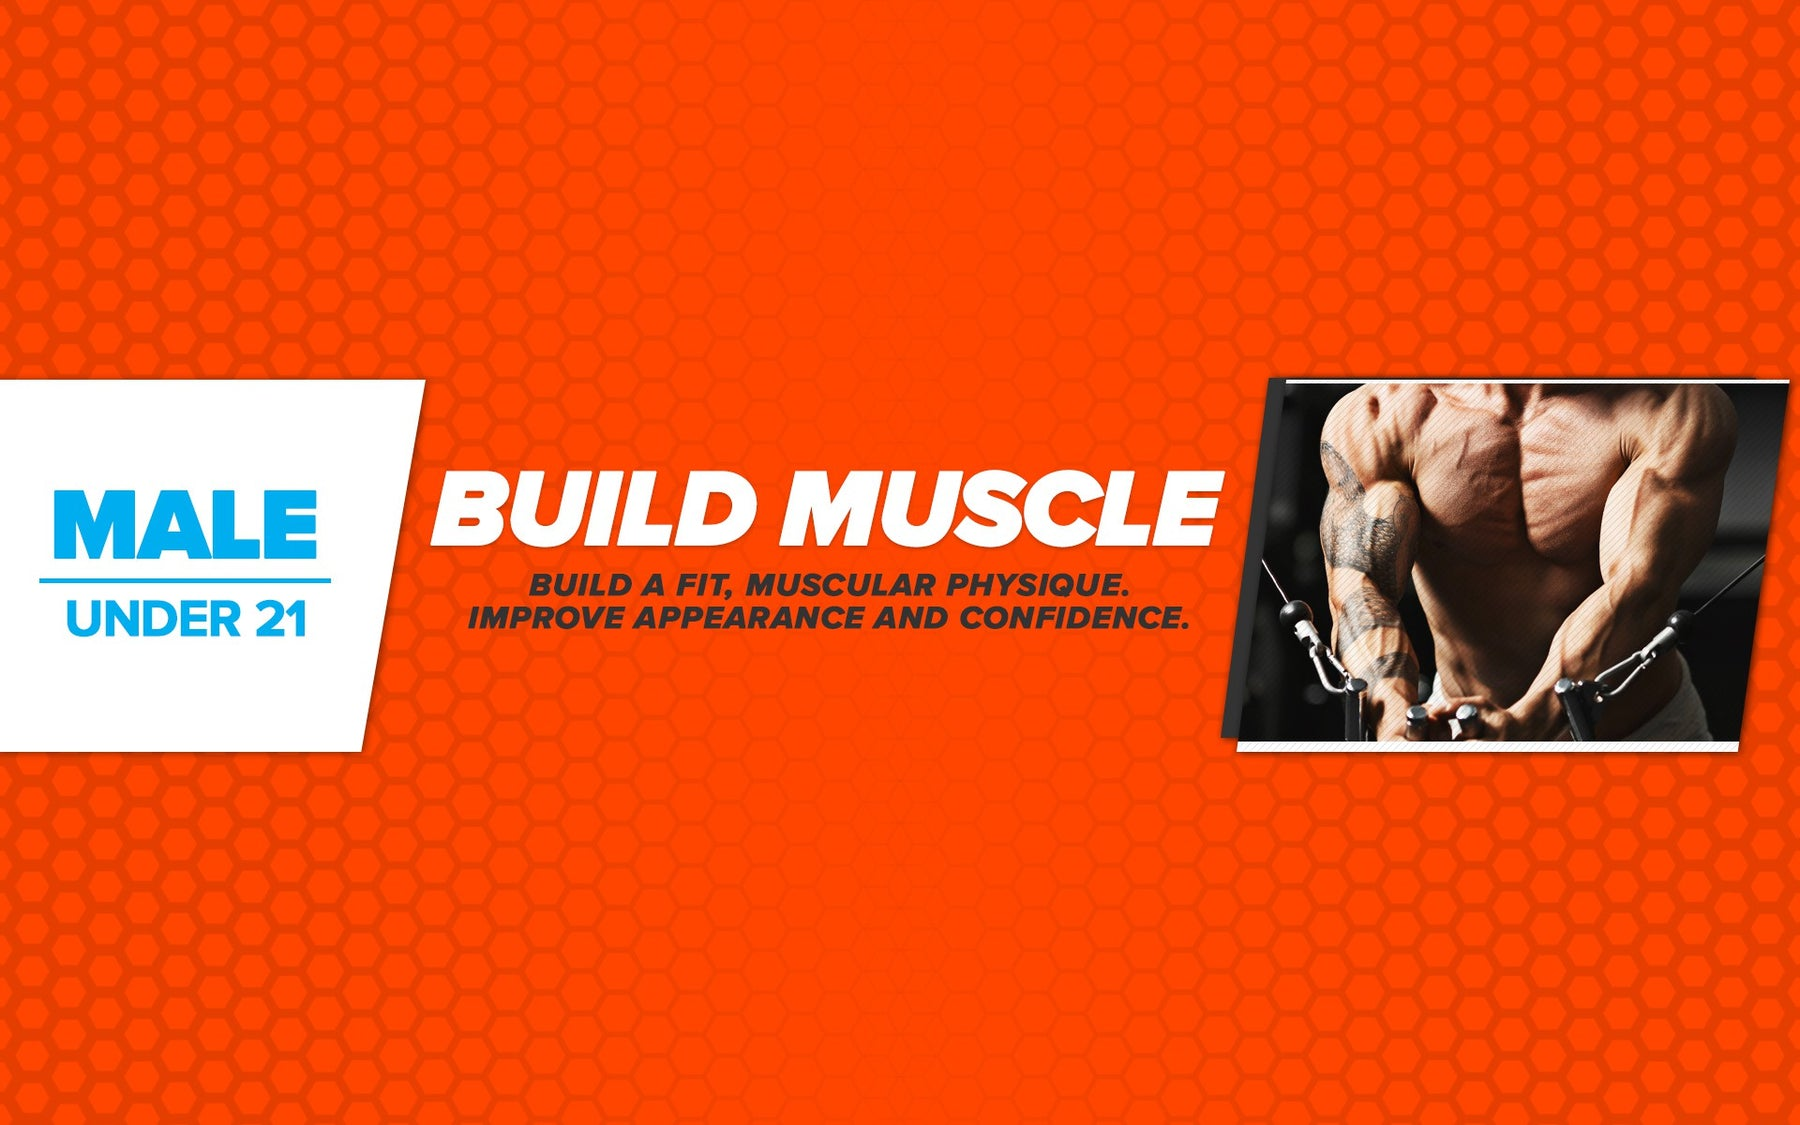 Free Workout Plan - Male - Under 21 - Build Muscle